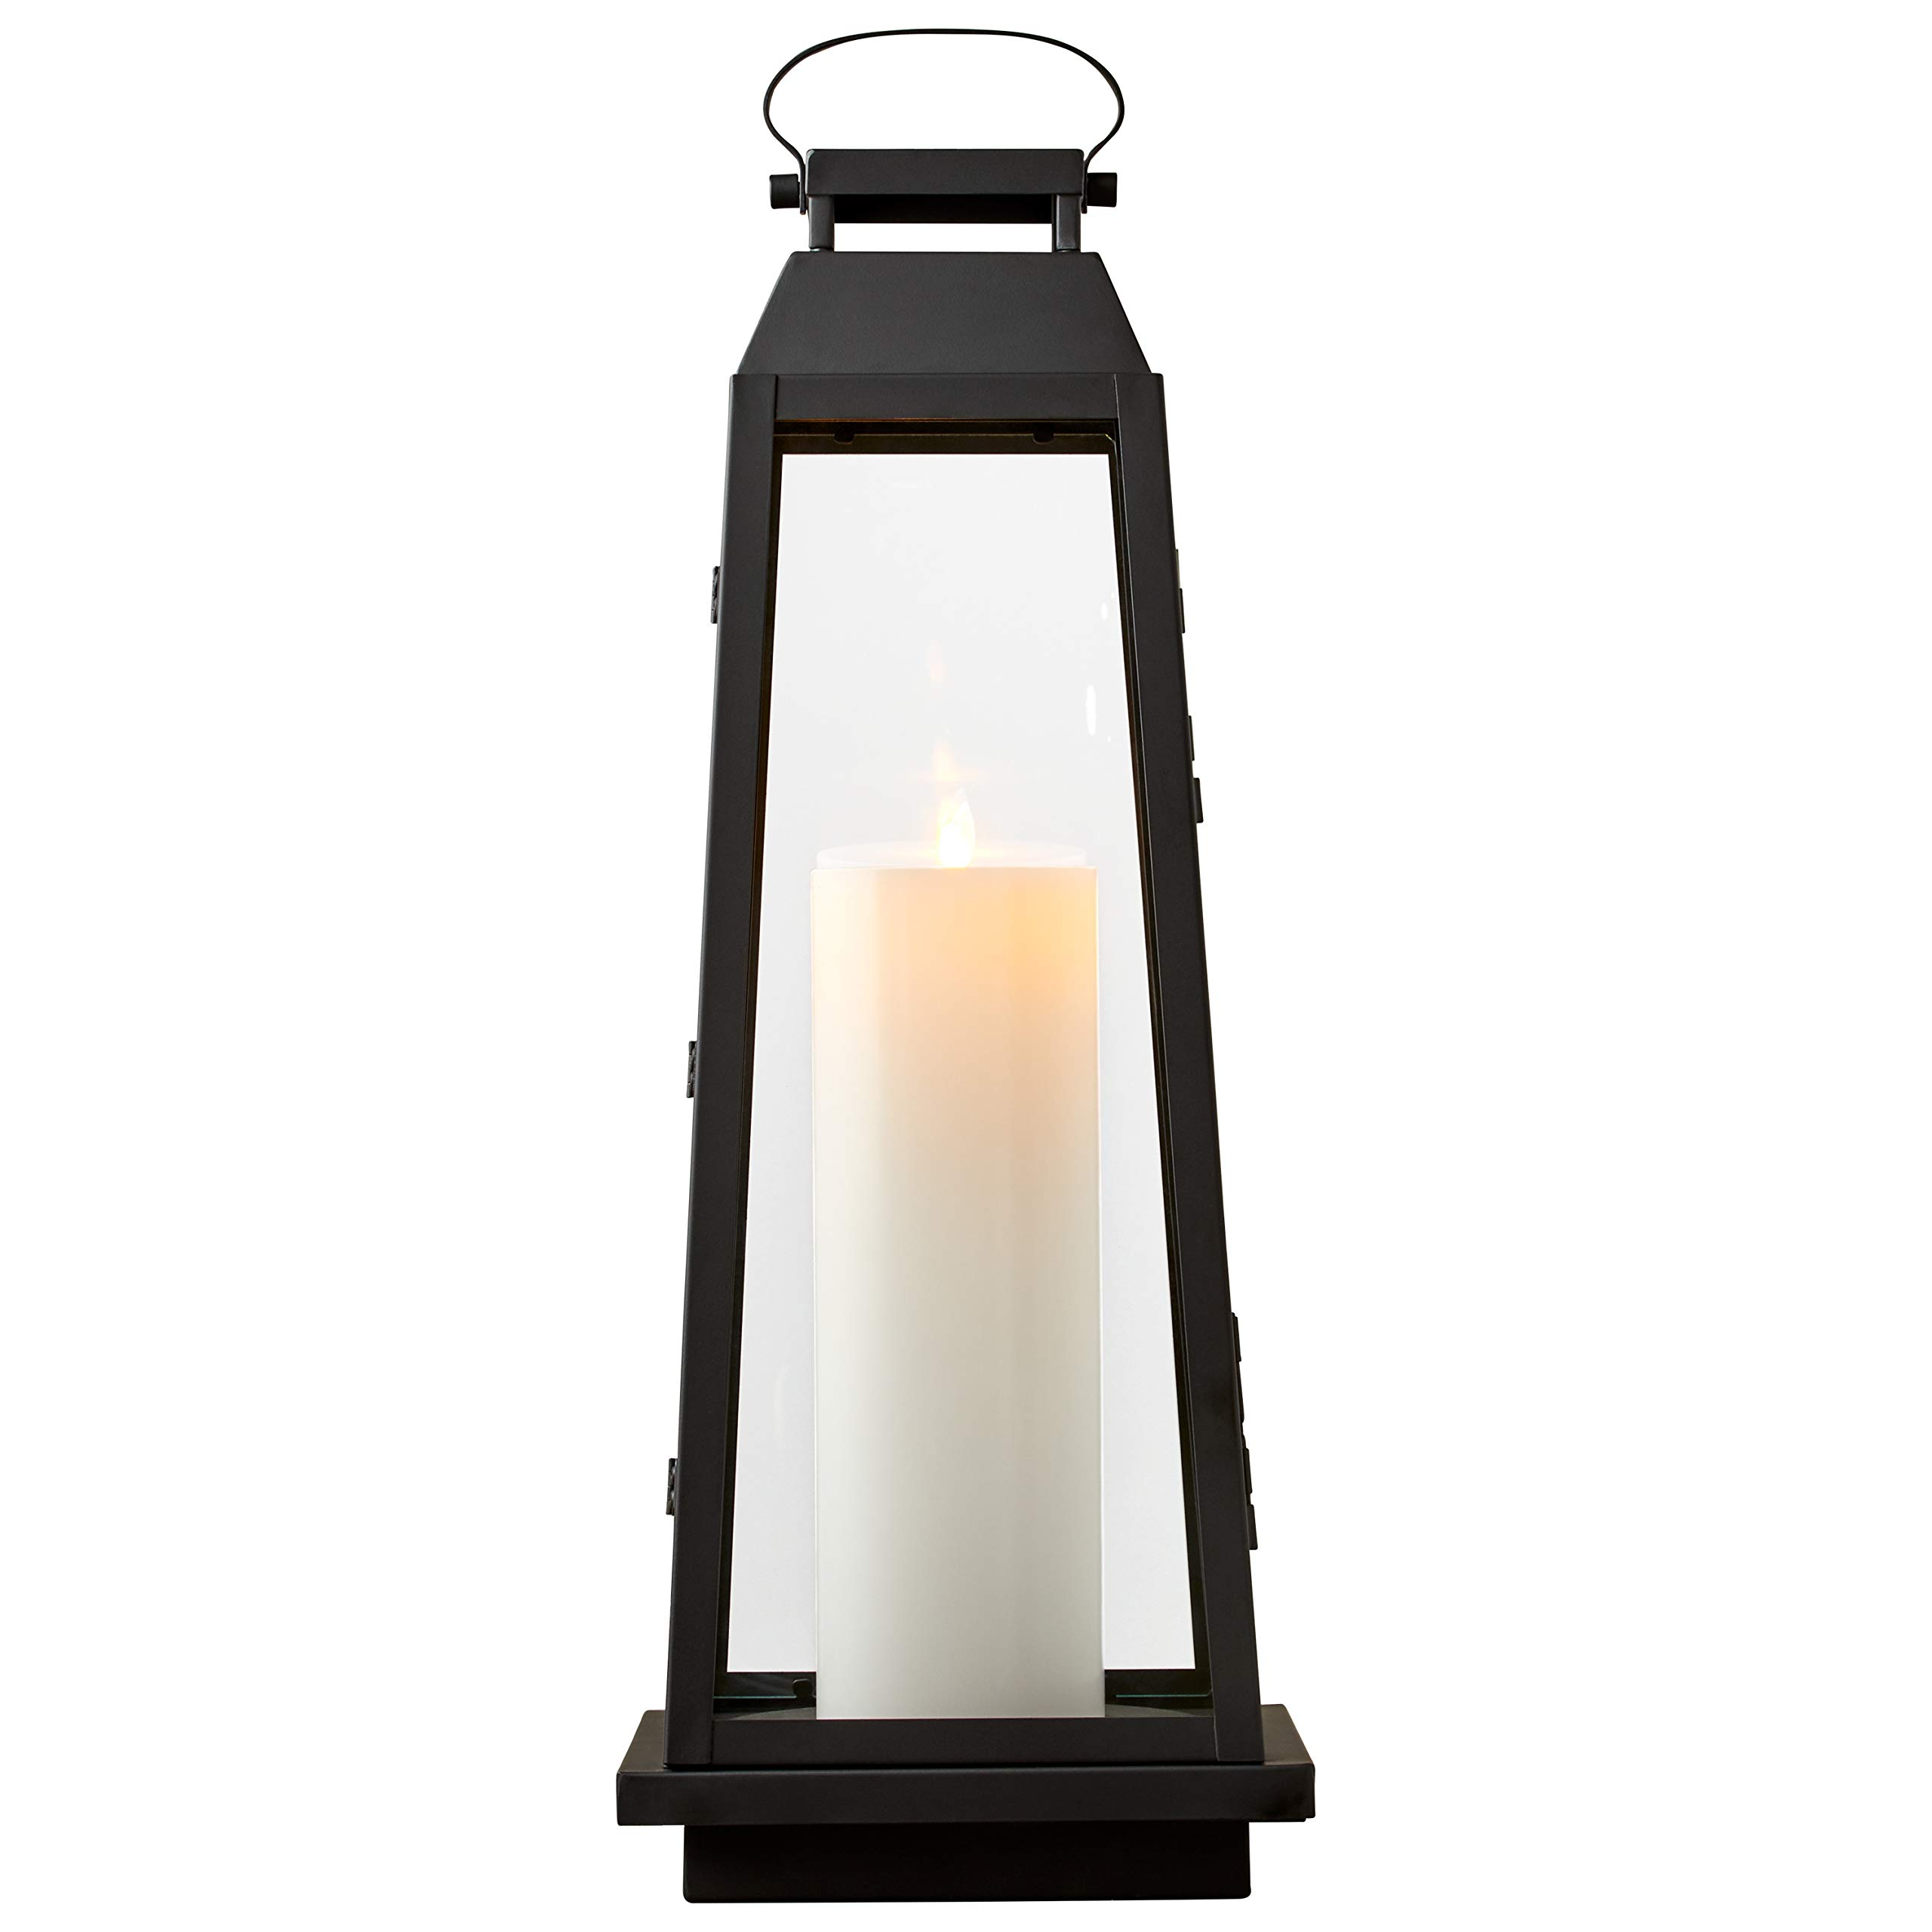 Stone & Beam Modern Traditional Decorative Metal and Glass Lantern with Candle, 25''H, Black, For Indoor Outdoor Use by Stone & Beam (Image #6)